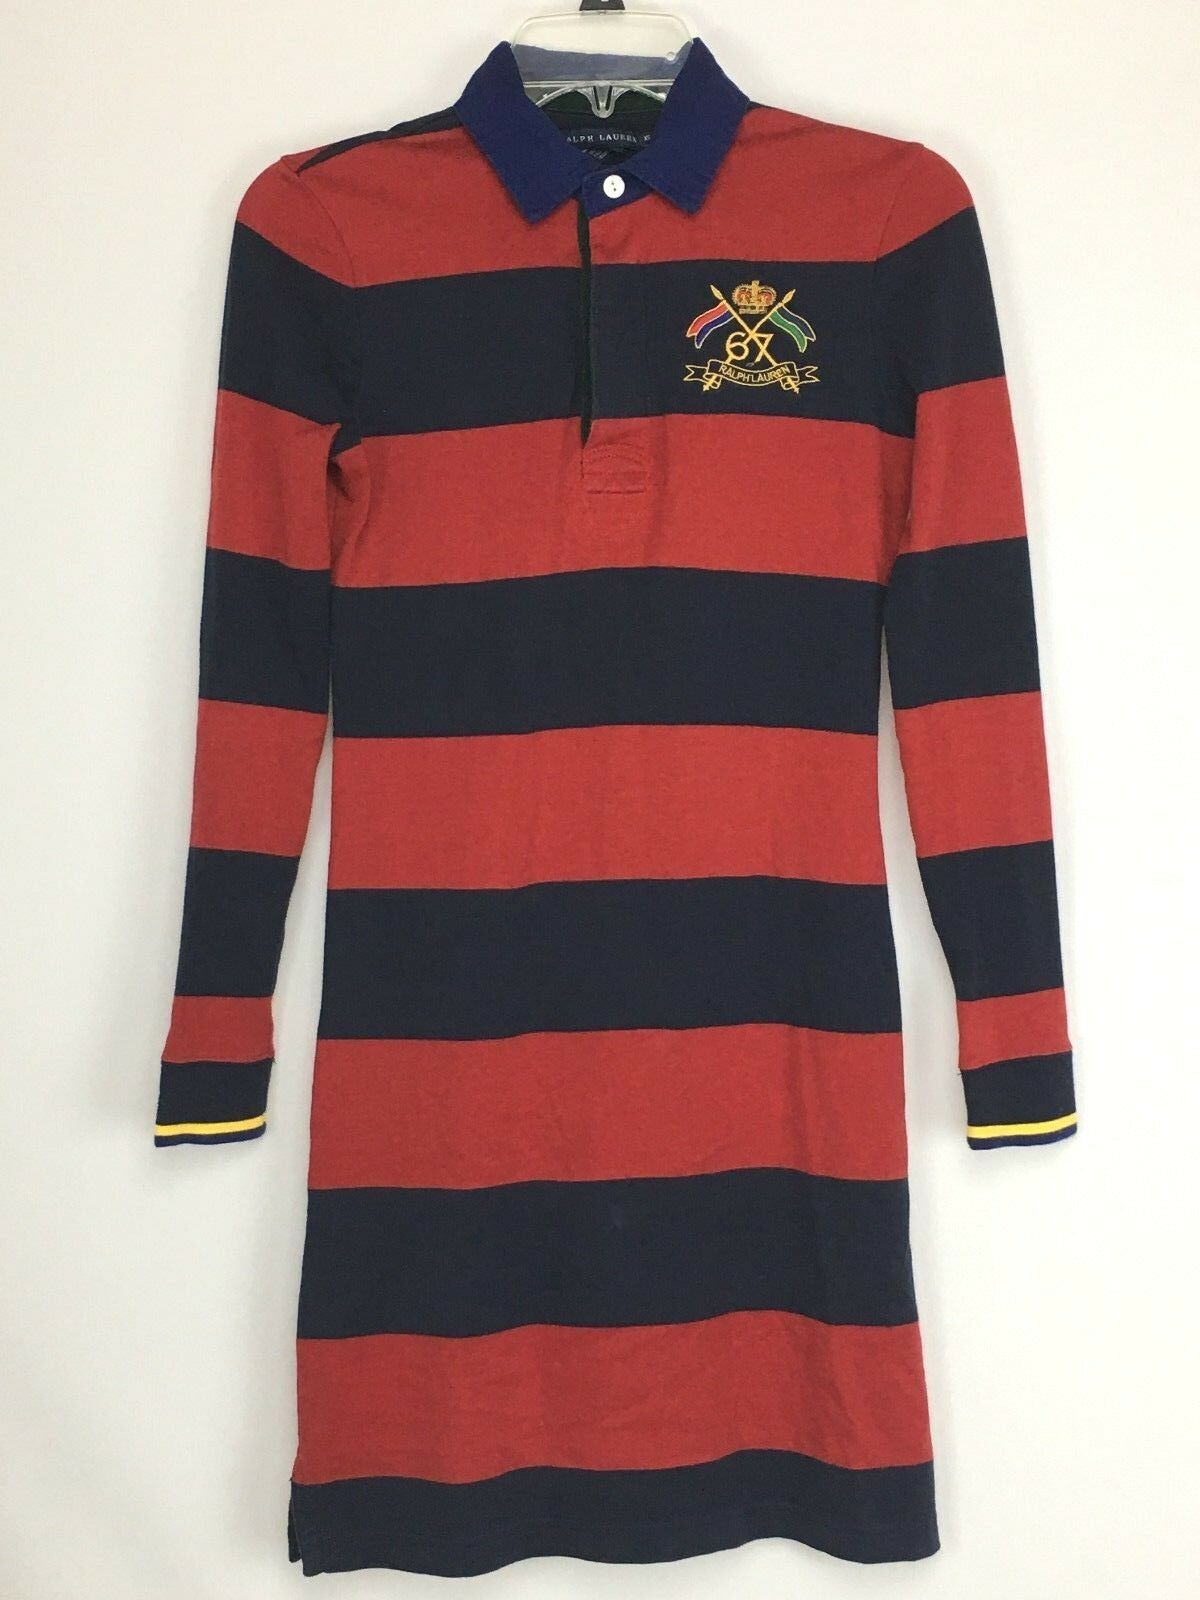 Vintage Ralph Lauren Men's Size XS Red   Navy Long Sleeve Shirt Embroidered Flag